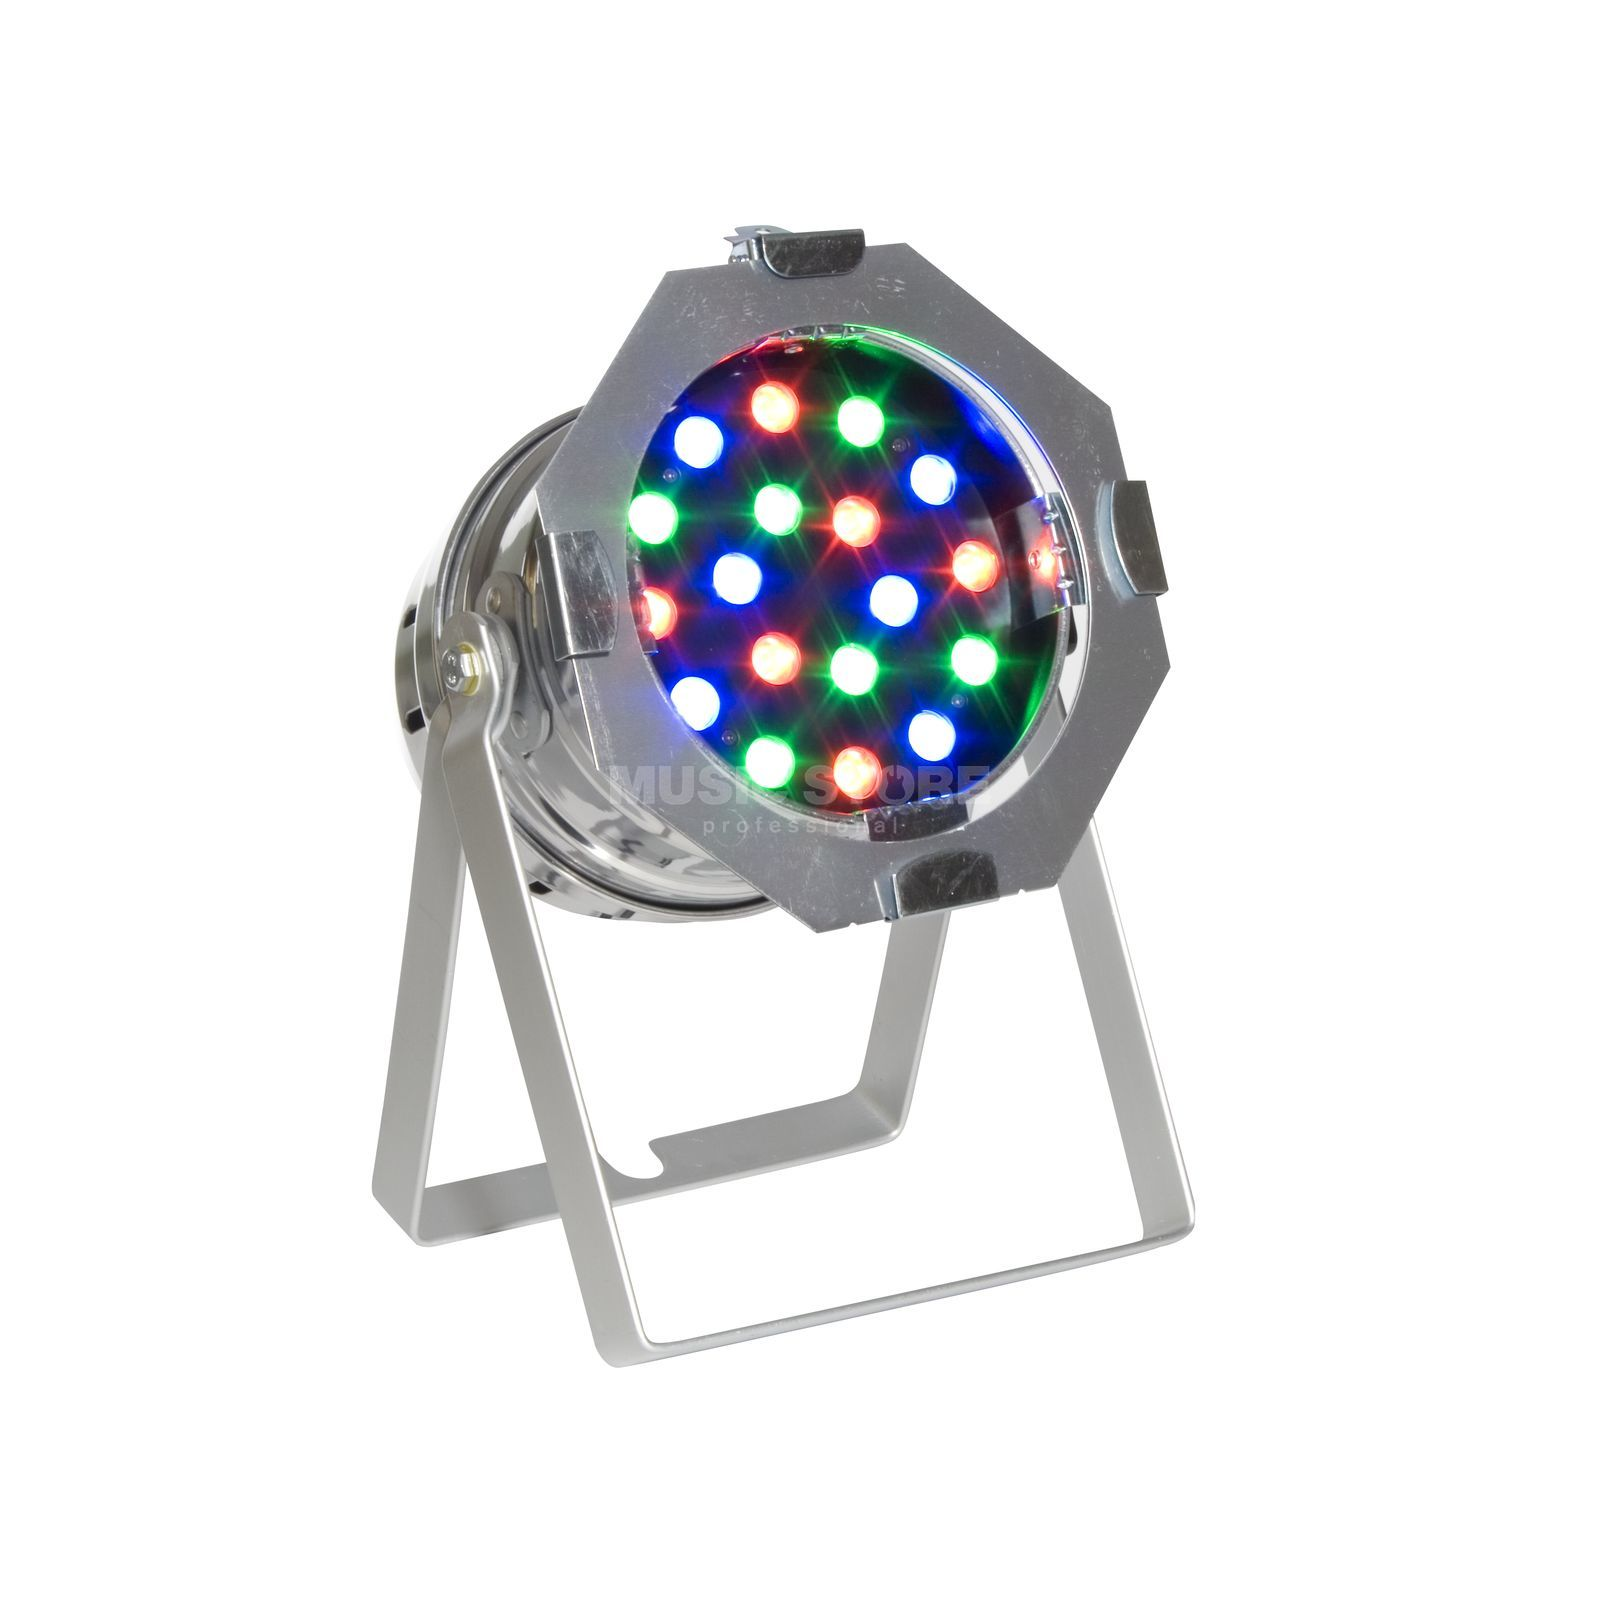 lightmaXX LED PAR 56 HighPower MKII 18x1W RGB LEDs, polished short Produktbillede